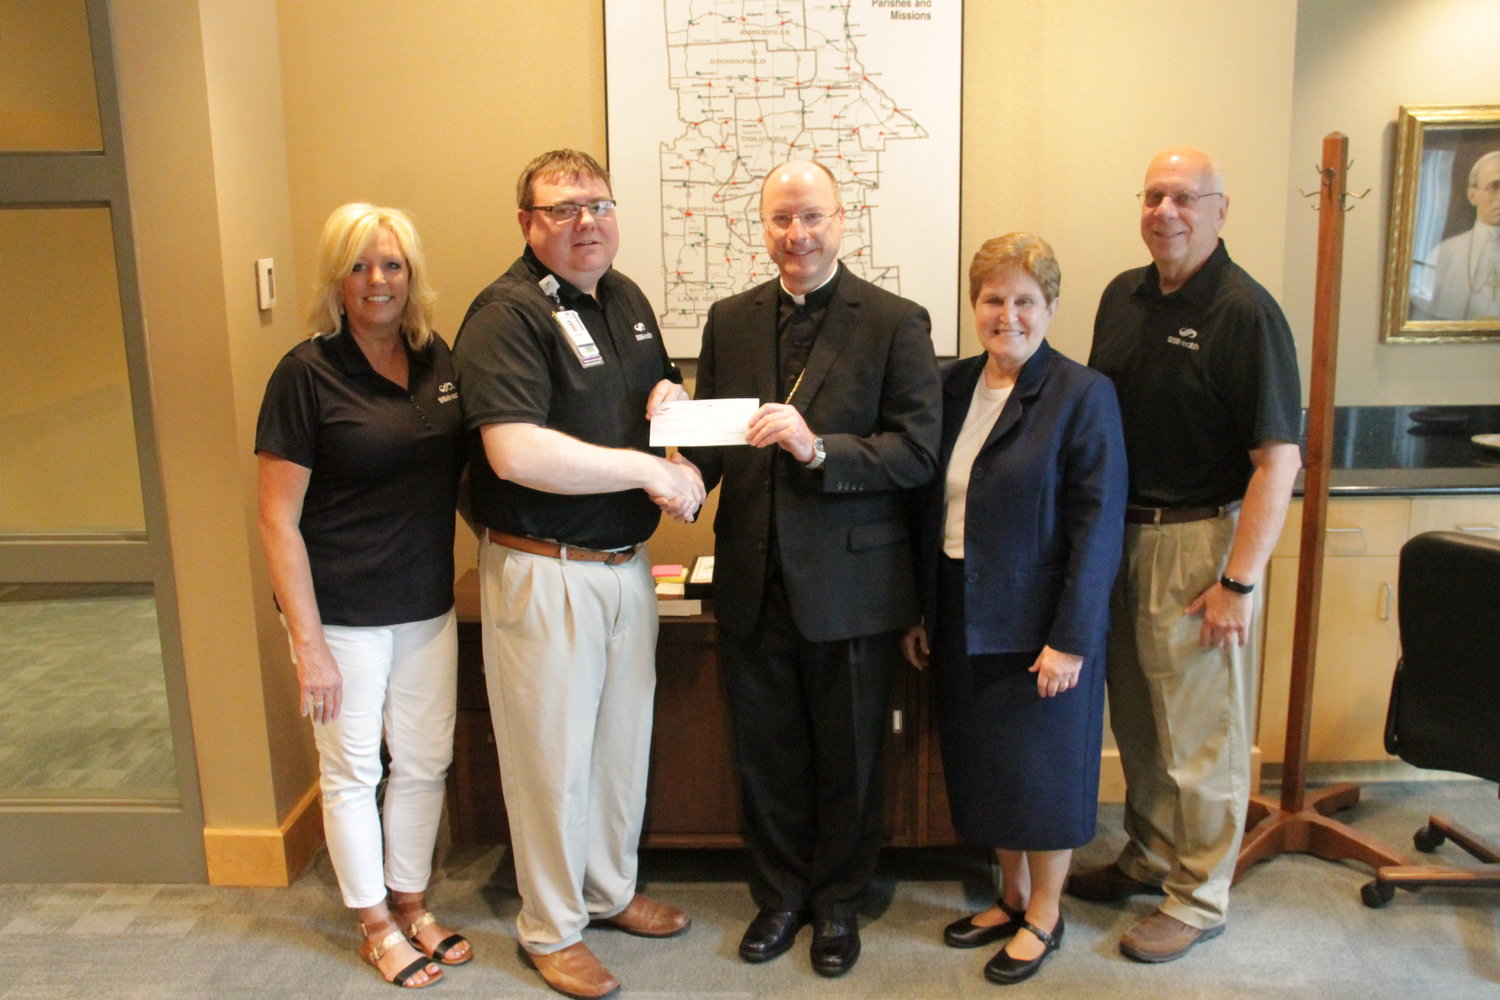 Joshua L. Allee, regional mission leader for SSM Health Mid-Missouri, presents to Bishop W. Shawn McKnight of the Jefferson City diocese a check for $25,000 for Catholic Charities of Central and Northern Missouri's Disaster Relief Fund. With them, from left, are Mike Baumgartner, president of SSM Health Mid-Missouri; Sister Kathleen Wegman of the School Sisters of Notre Dame, the diocese's director of pastoral and charitable services and liaison for Catholic healthcare; and Bev Stafford, director of the St. Mary's Foundation.